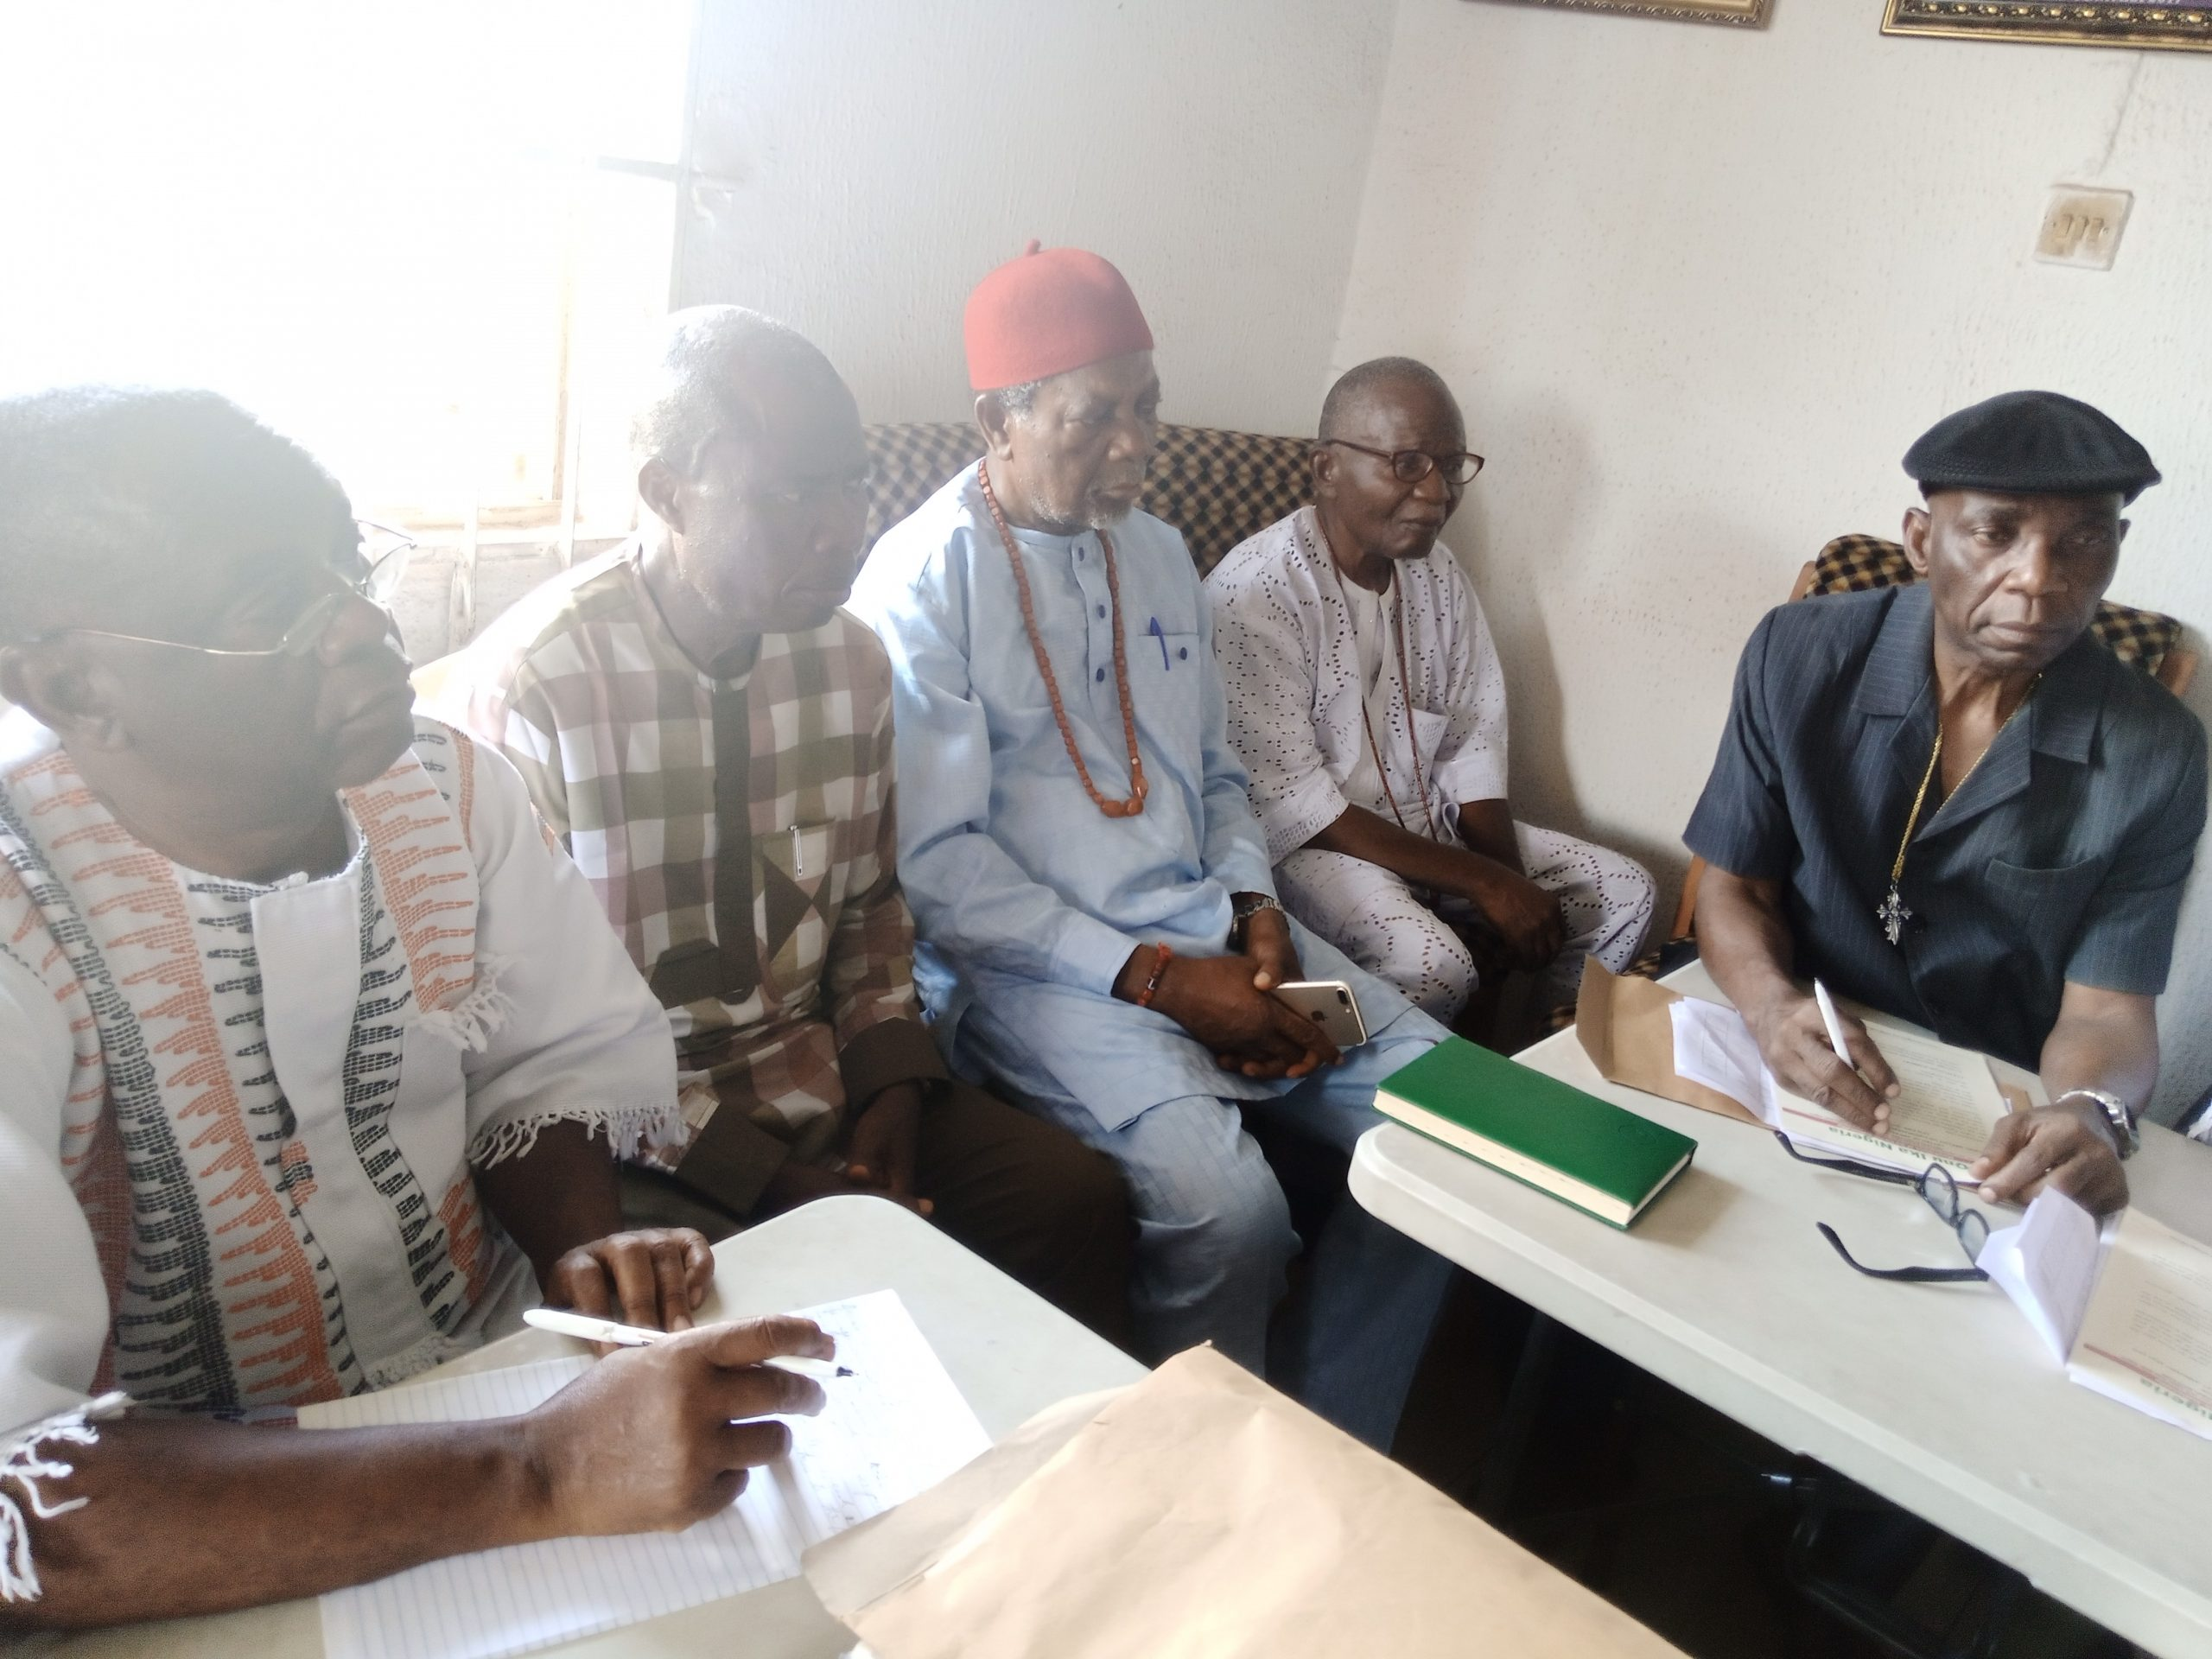 Some-Of-The-Victims-scaled ONU IKA ISSUES CHEQUES TO OSADEBE GAS PLANT VICTIMS